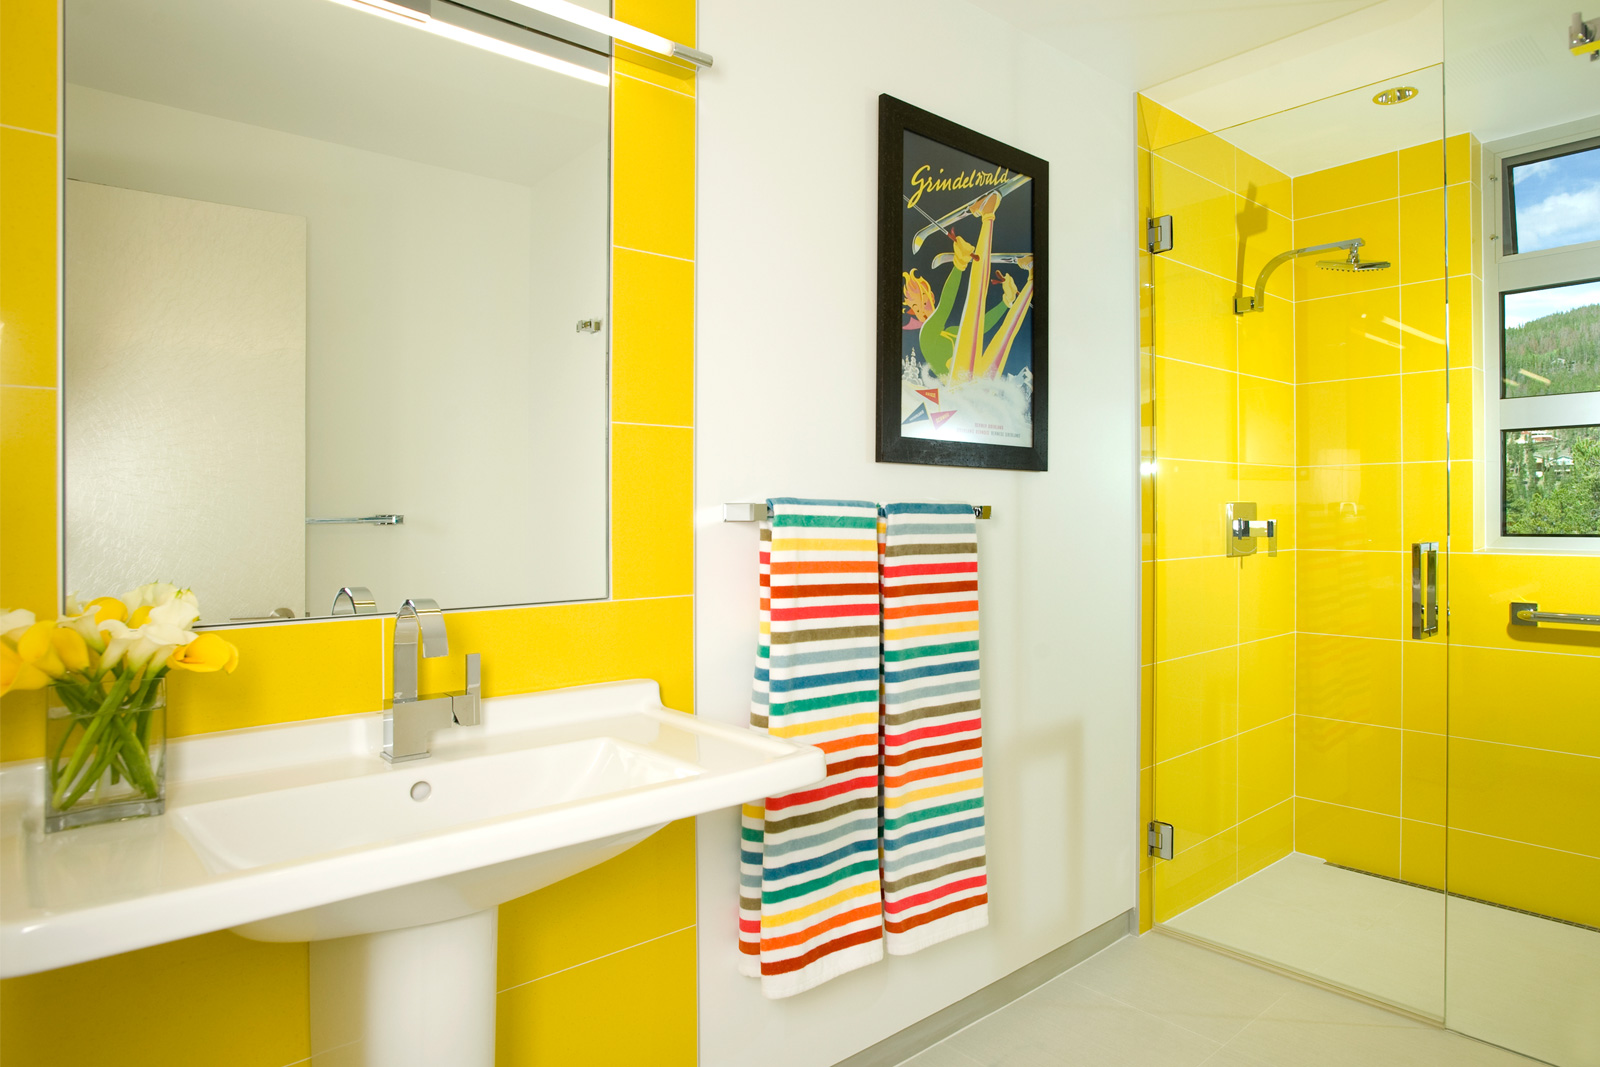 Bathroom Ideas | Bathroom Remodel Ideas | HouseLogic Bathrooms